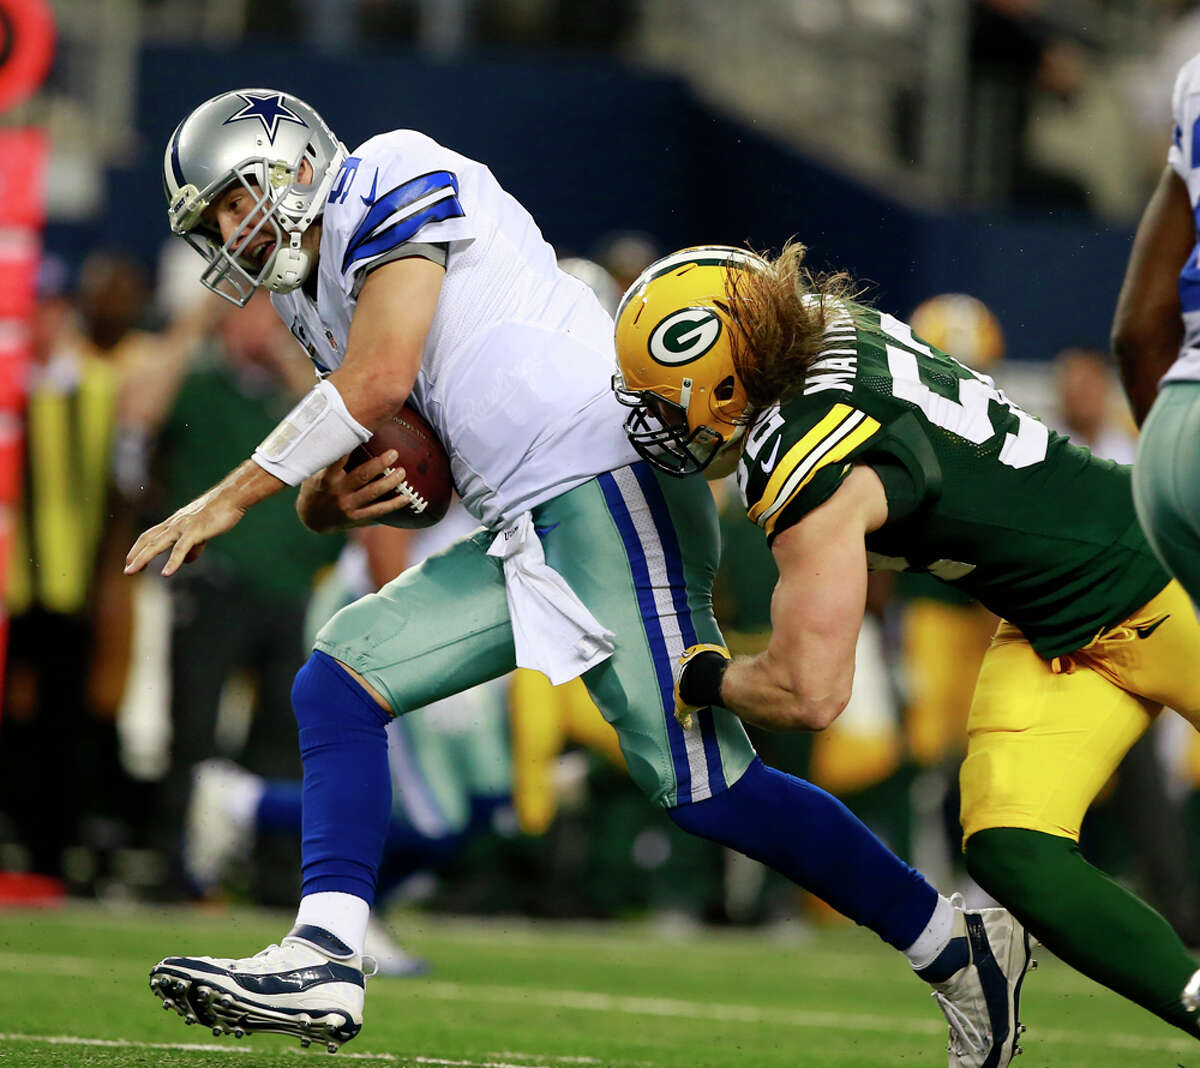 Dallas Cowboys quarterback Tony Romo (9) is sacked by Green Bay Packers inside linebacker Brad Jones (59) during the second half of an NFL football game Sunday, Dec. 15, 2013 in Arlington, Texas. (AP Photo/Waco Tribune Herald/ Jose Yau)